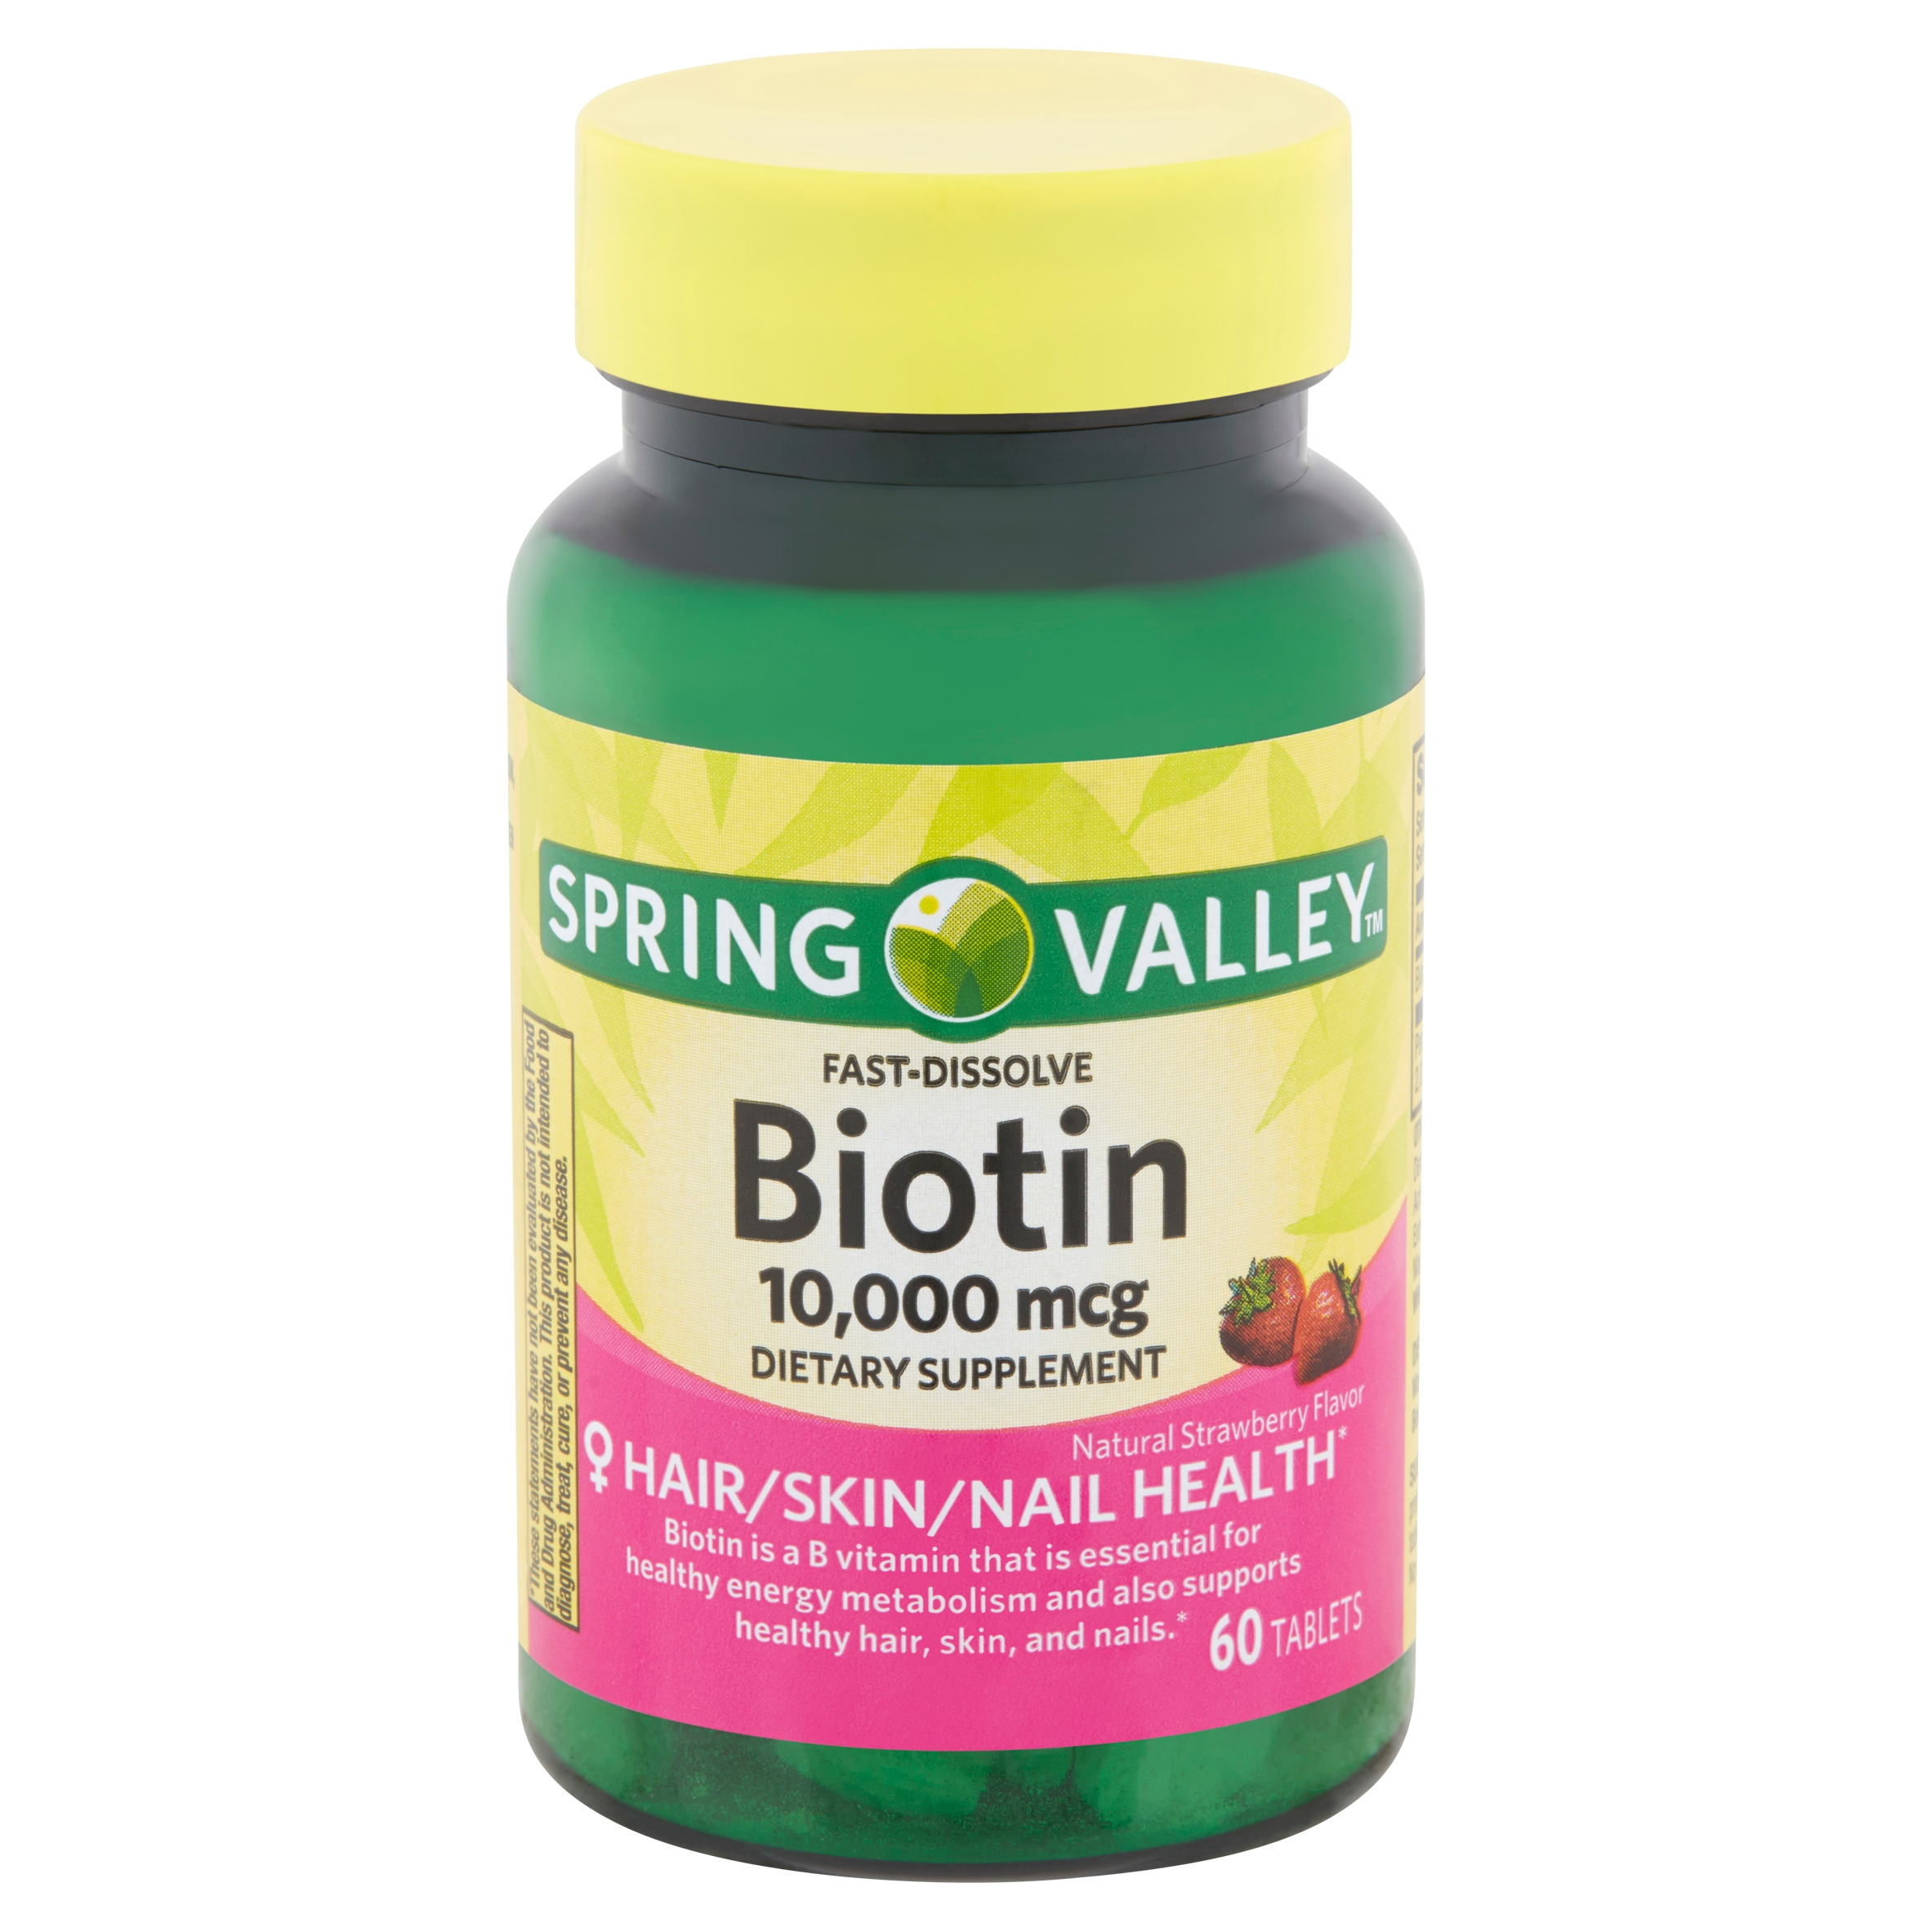 Spring Valley Fast-Dissolve Biotin Tablets, 10,000 mcg, 60 count ...